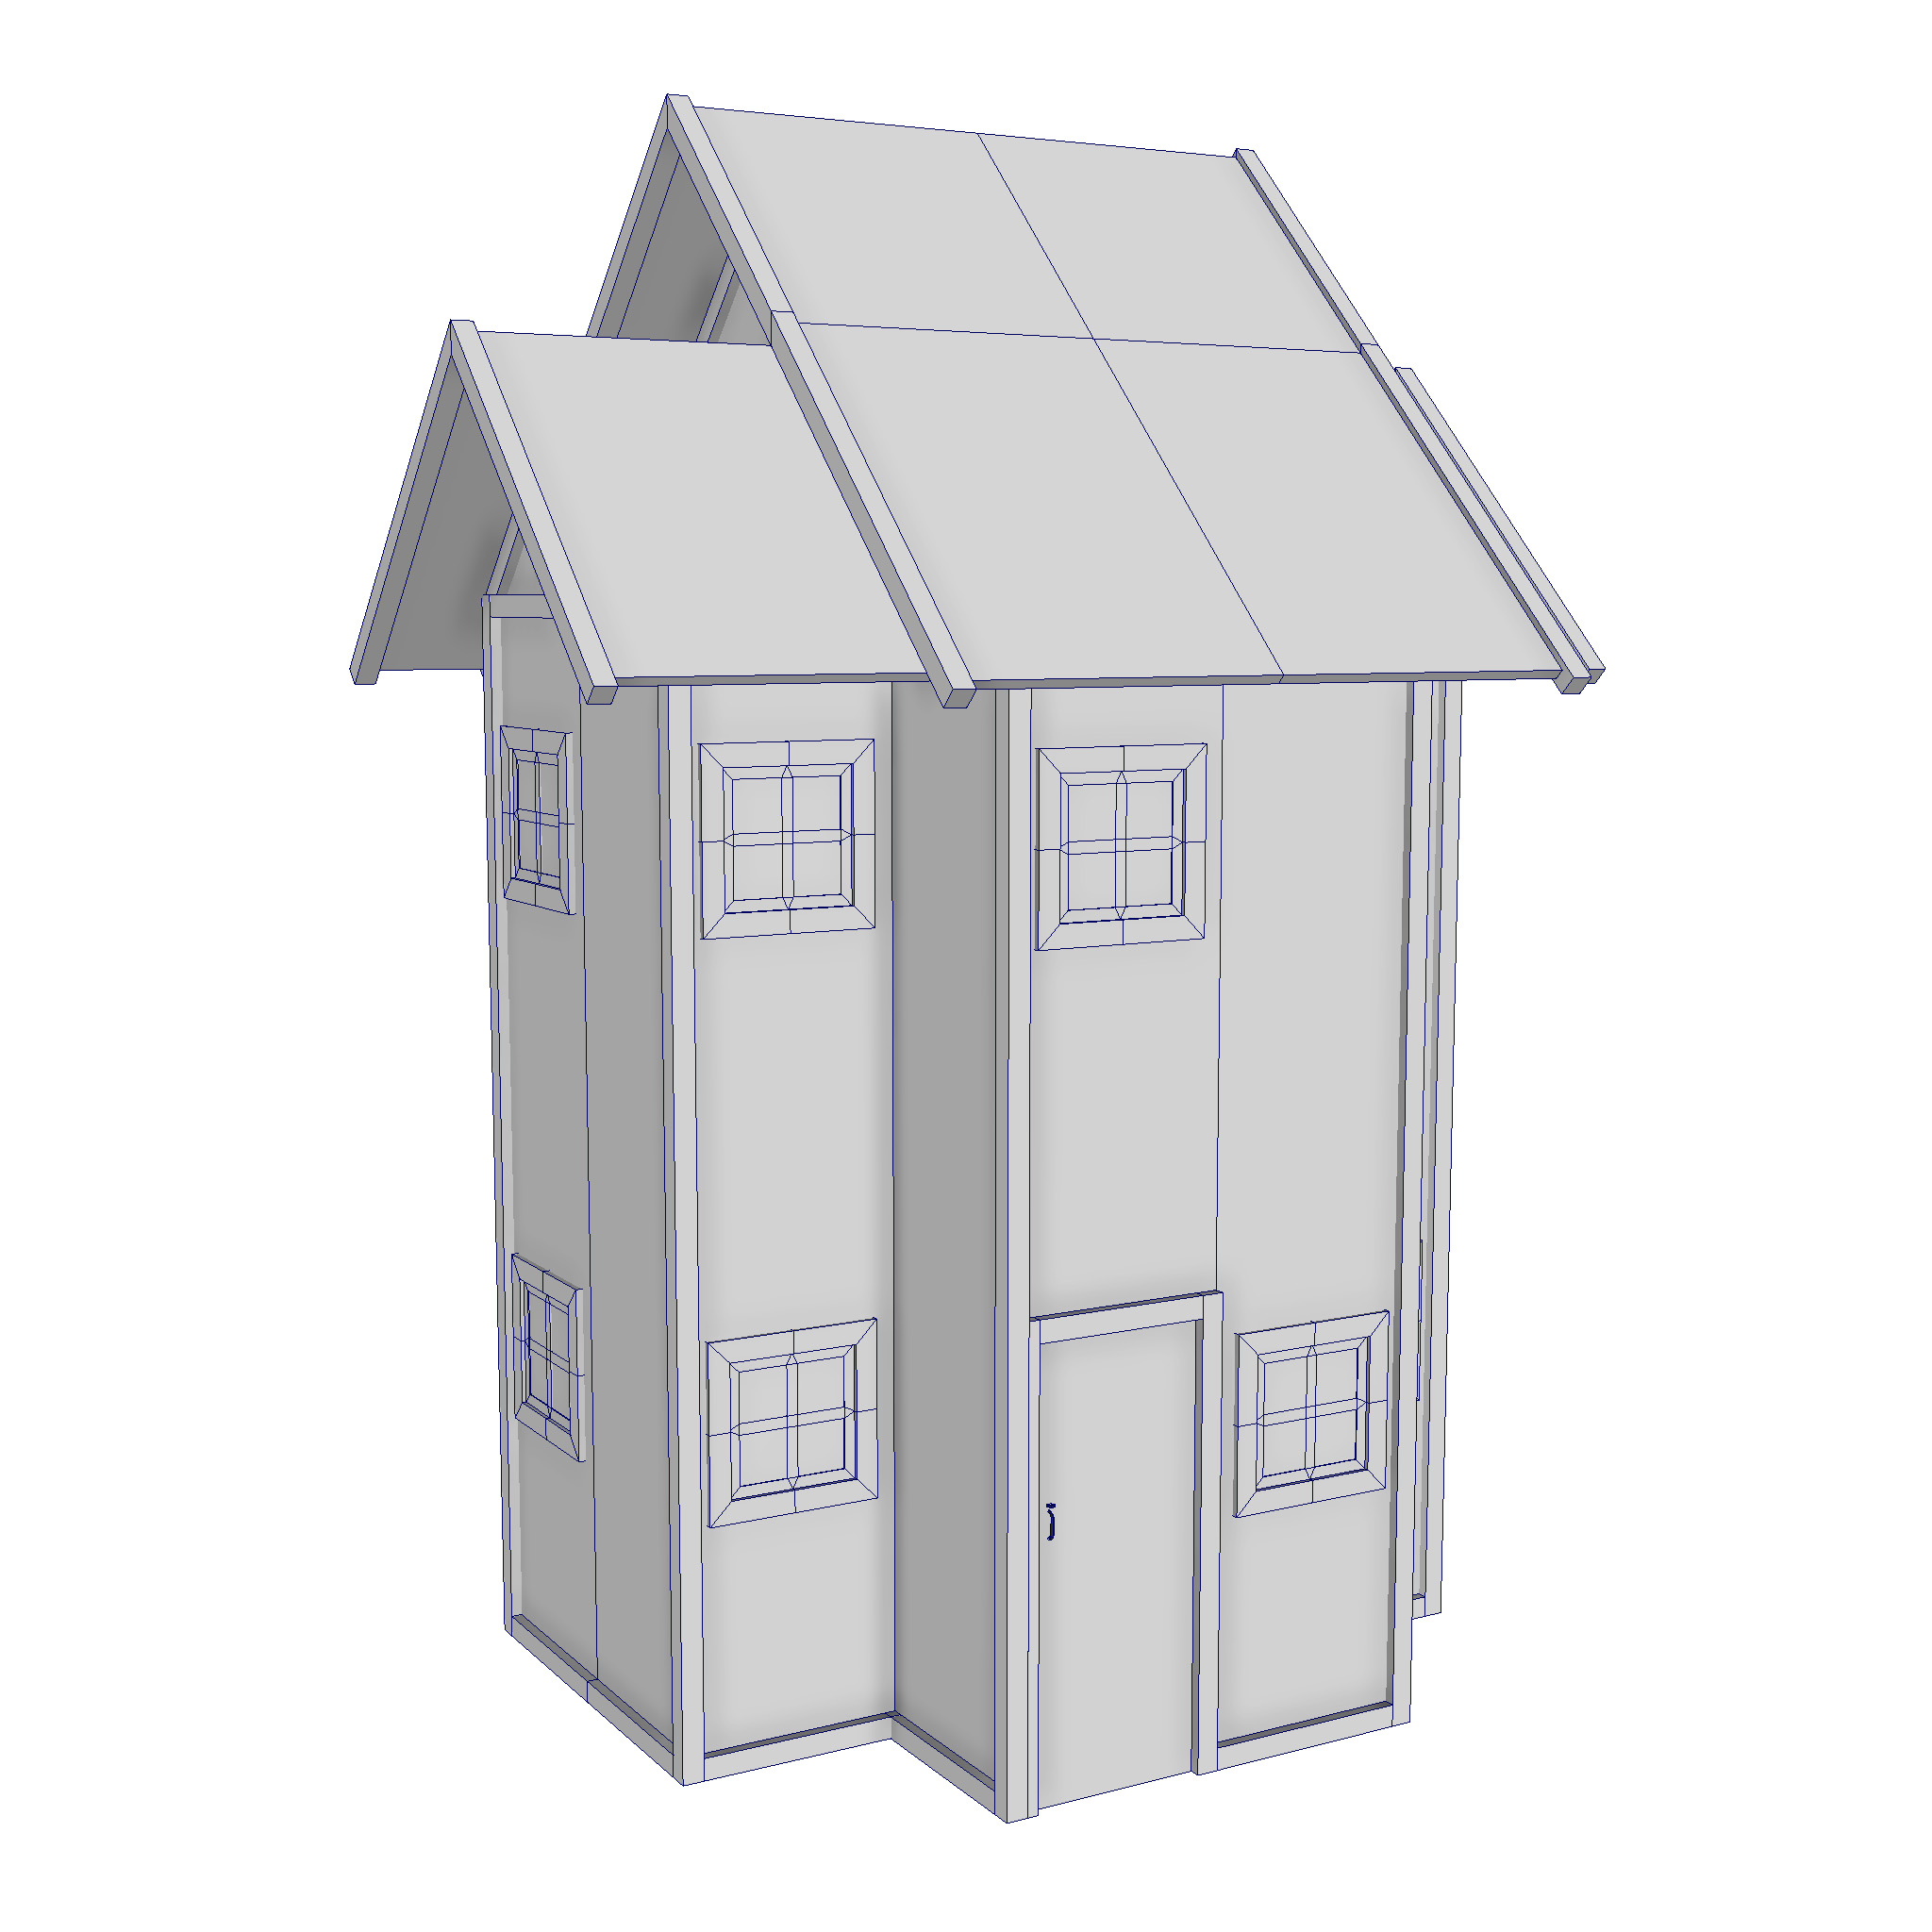 modular wood house set 3d model fbx ma mb 271434